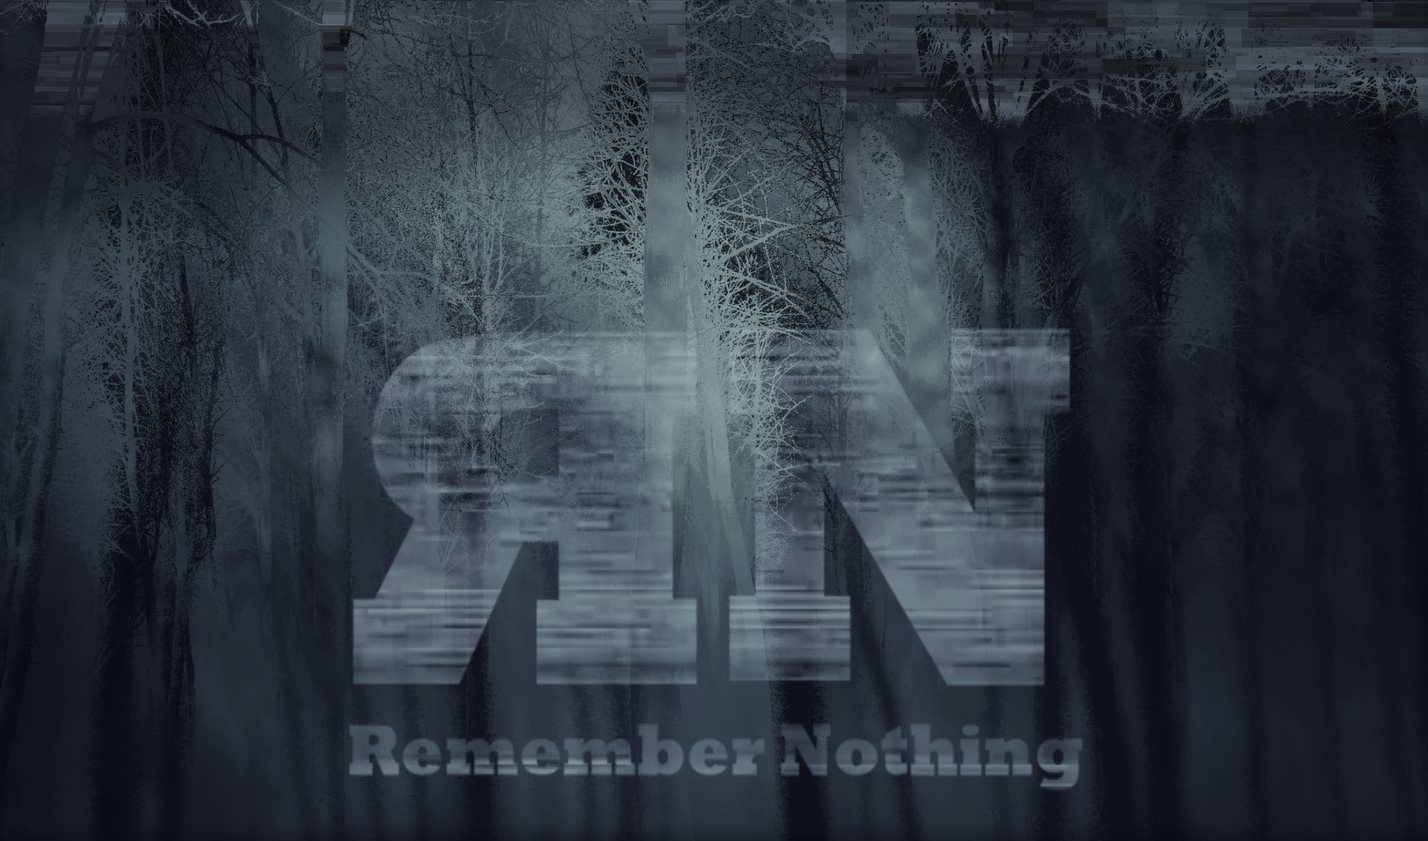 Remember Nothing